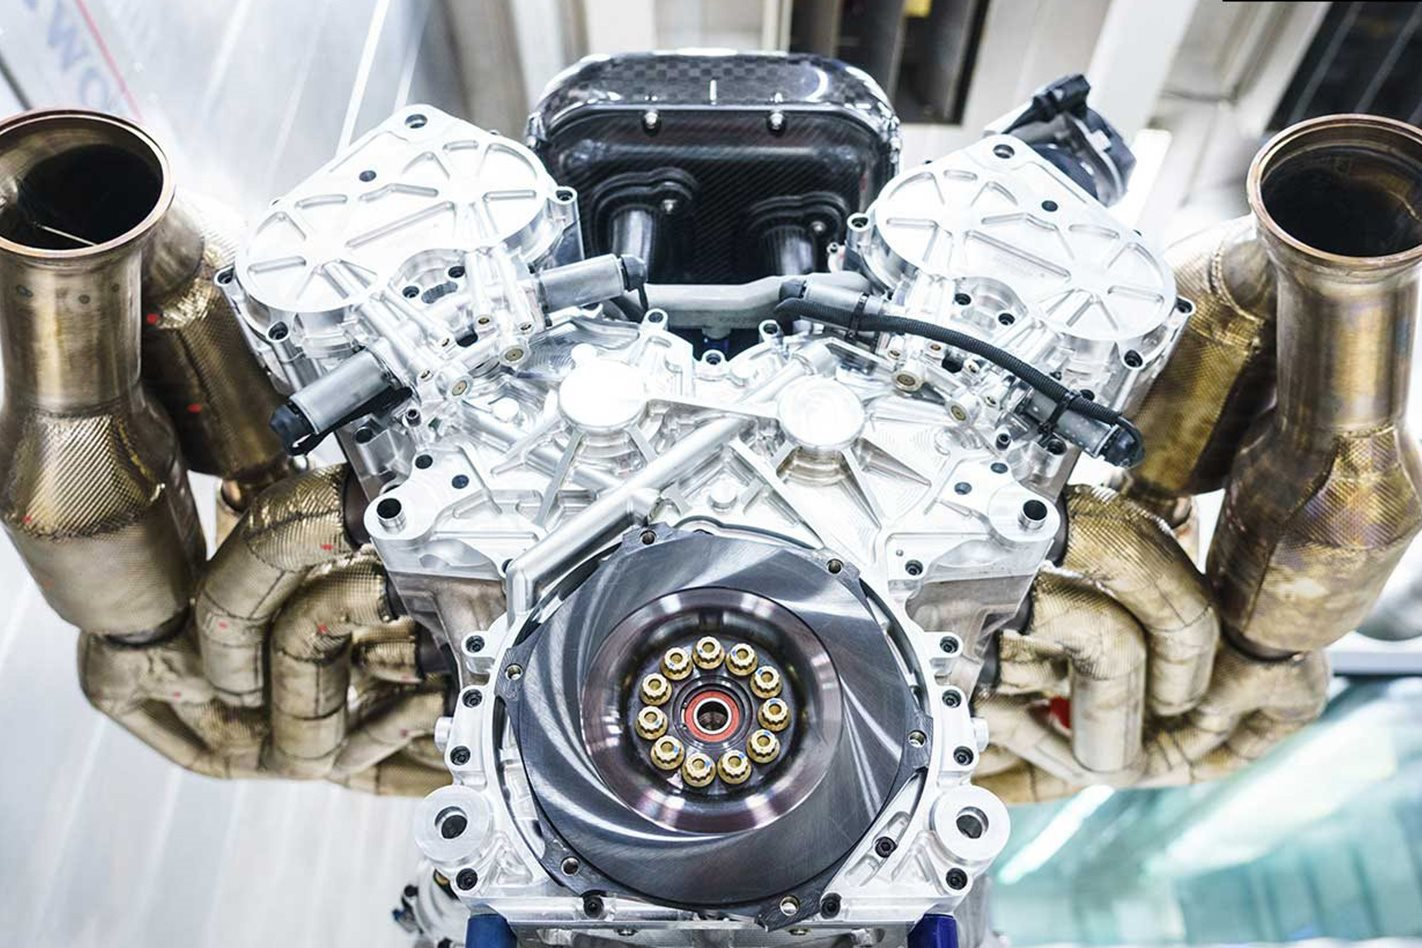 We Had A Three Cylinder Engine Which Was An Absolute Quarter Of The Valkyrie Because We Have Four Catalysts So Each Catalyst Serves Three Cylinders